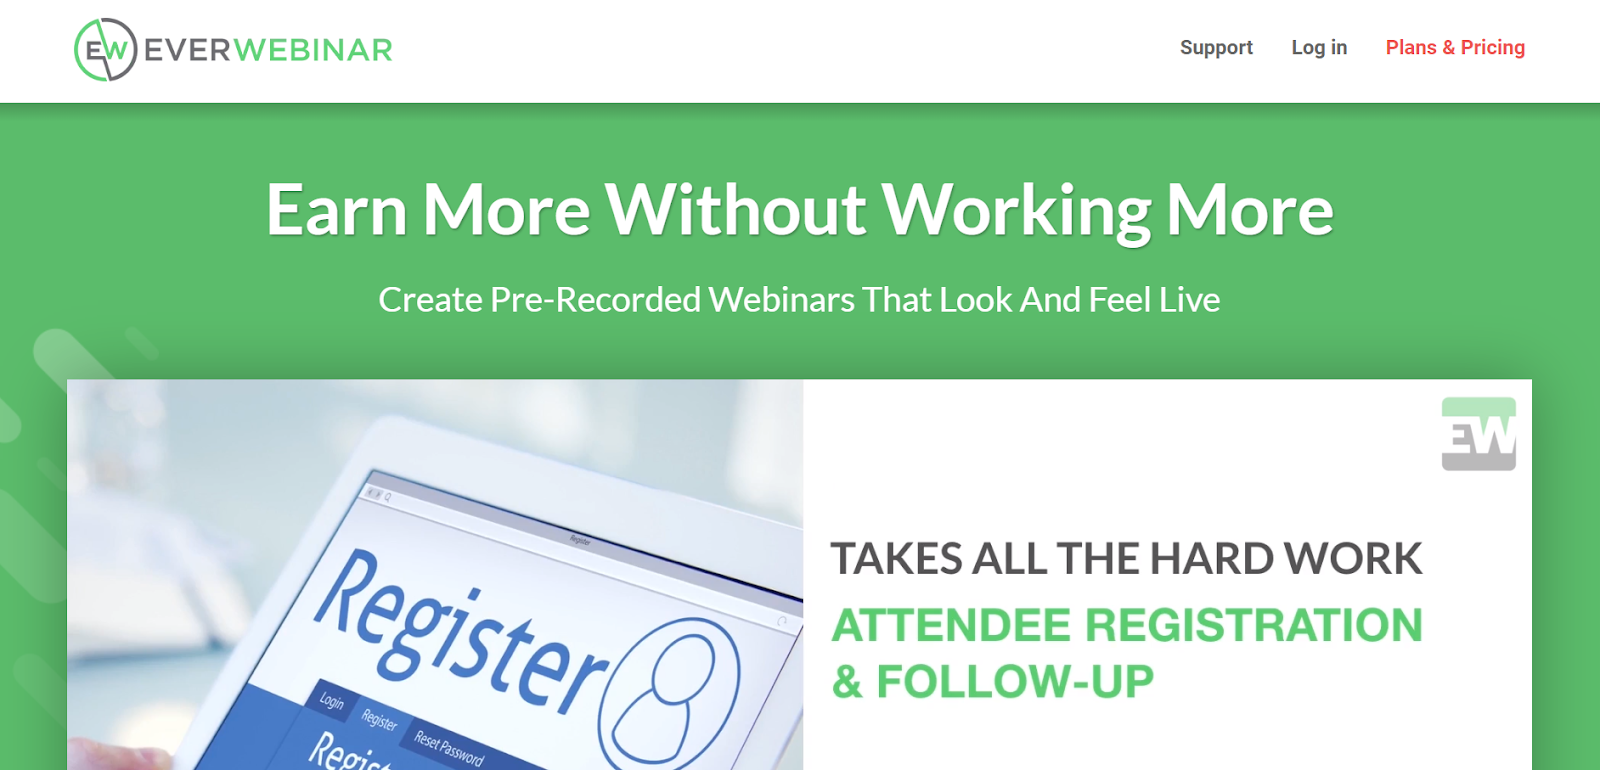 webinar lead generation tools